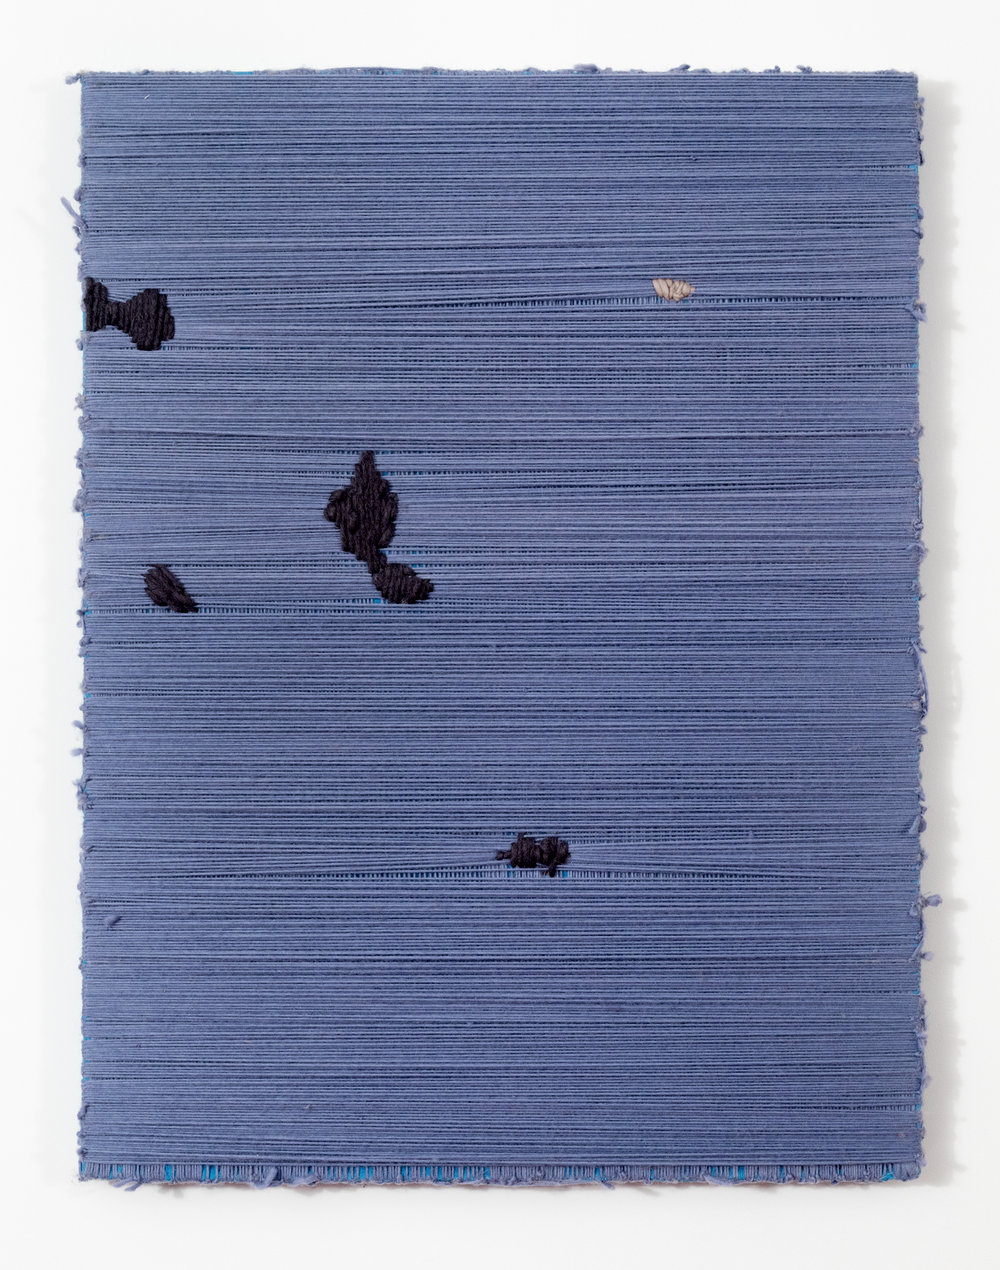 System 11 2016 48 by 36 inches Wool and Linen